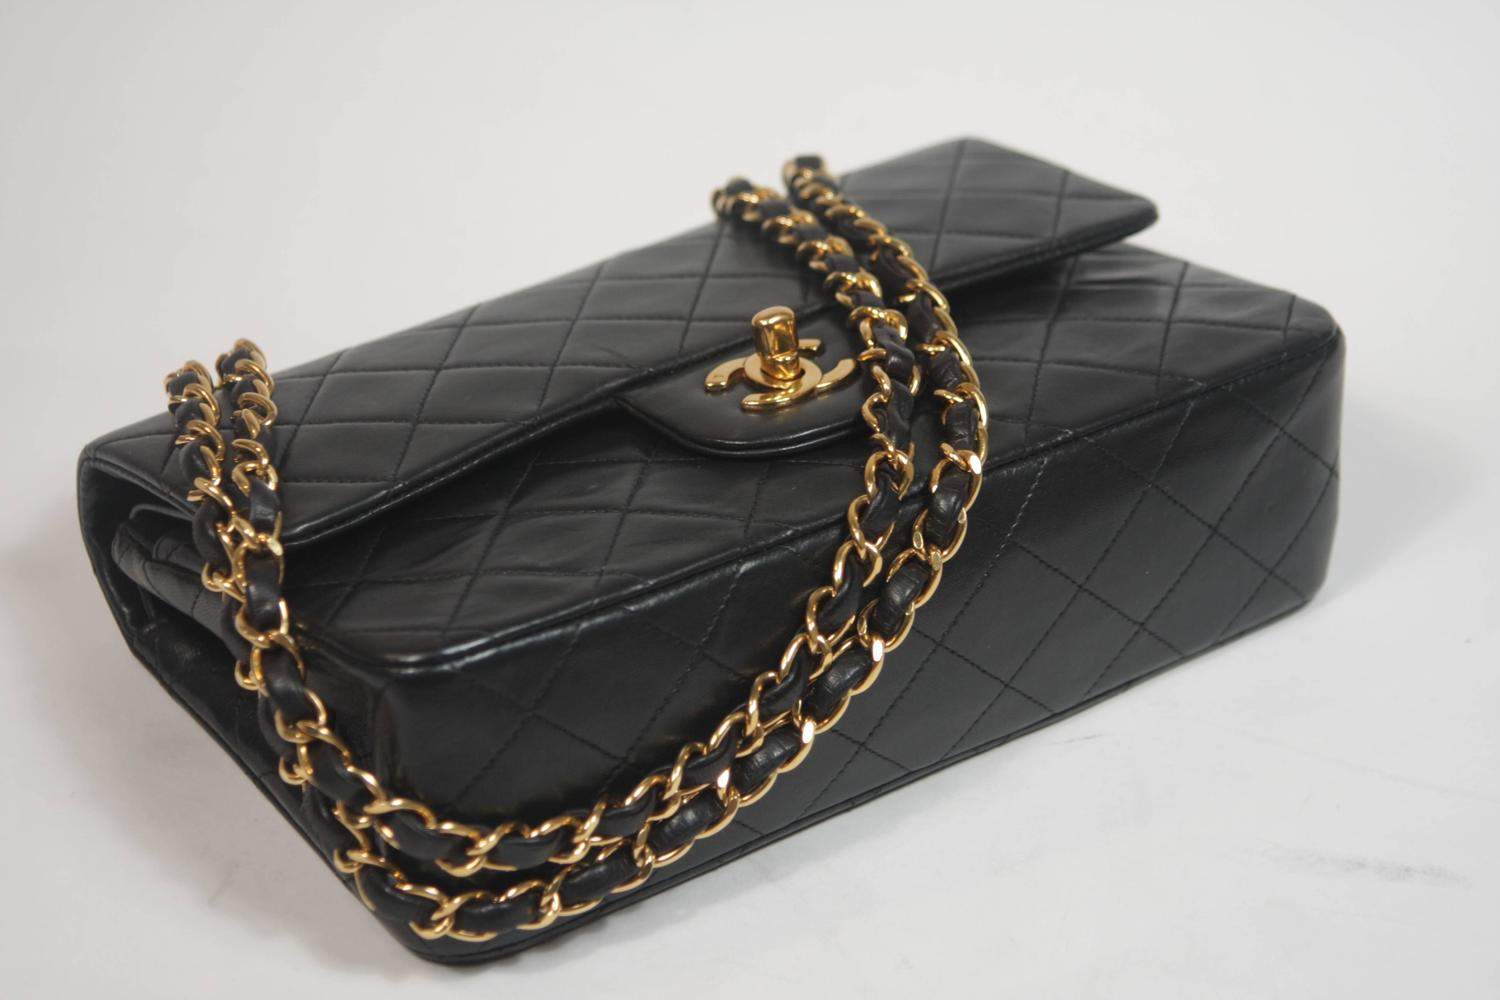 Chanel Black Caviar GHW Snap Wallet in Box at 1stdibs